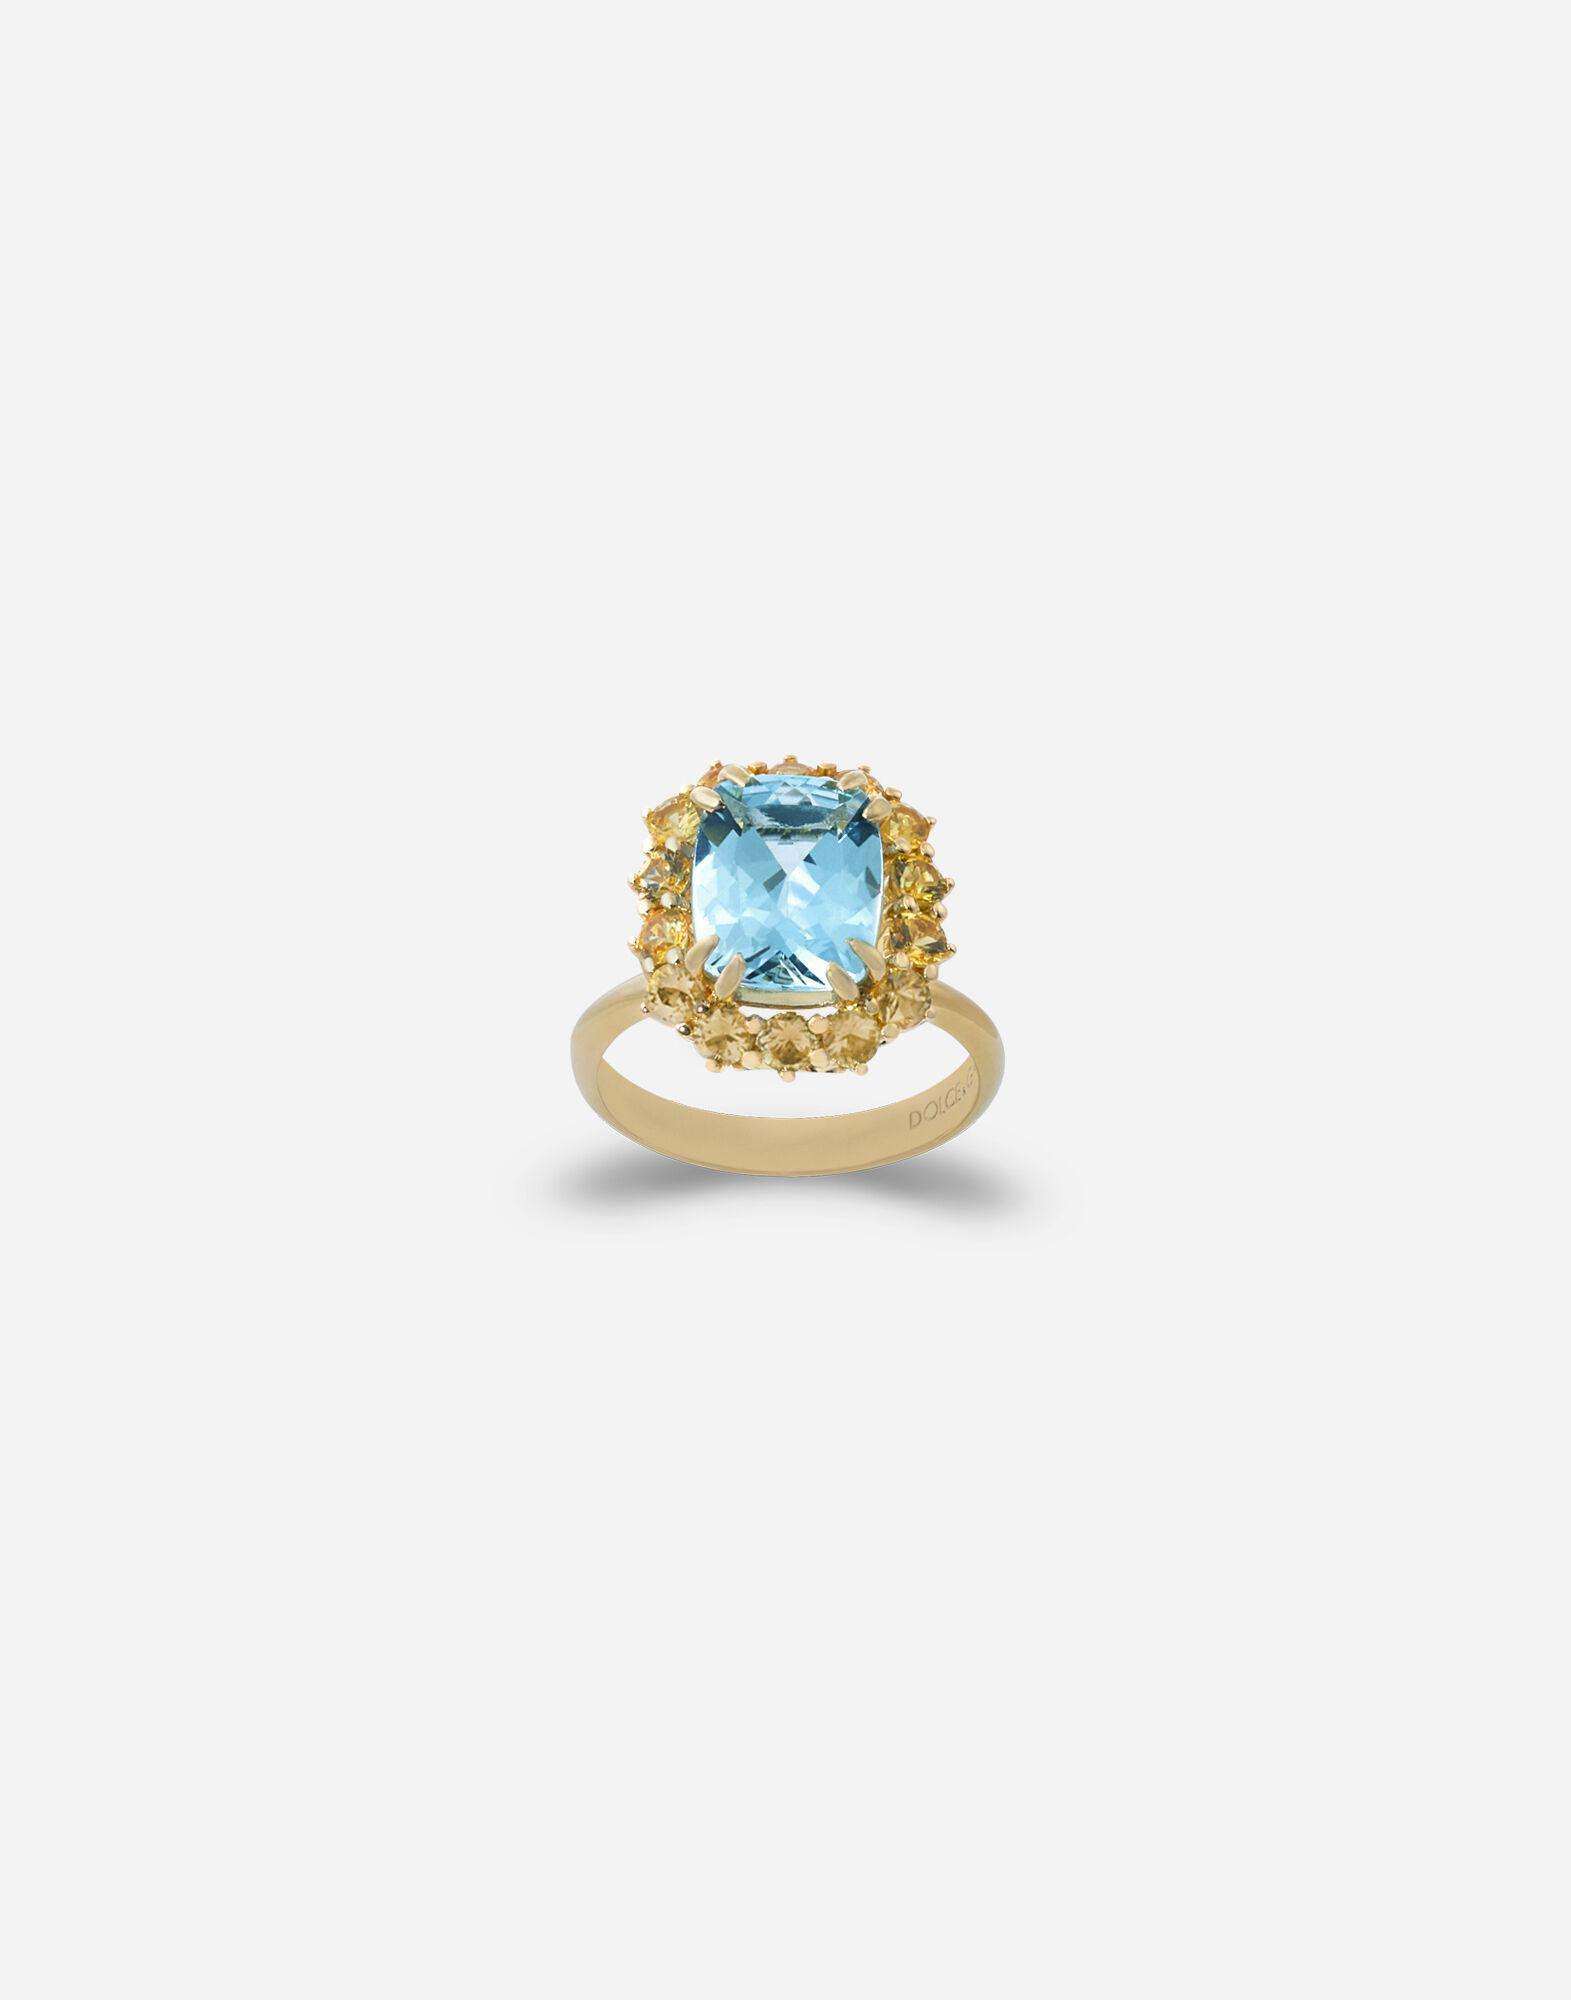 Heritage ring in yellow gold, acquamarine and yellow sapphires